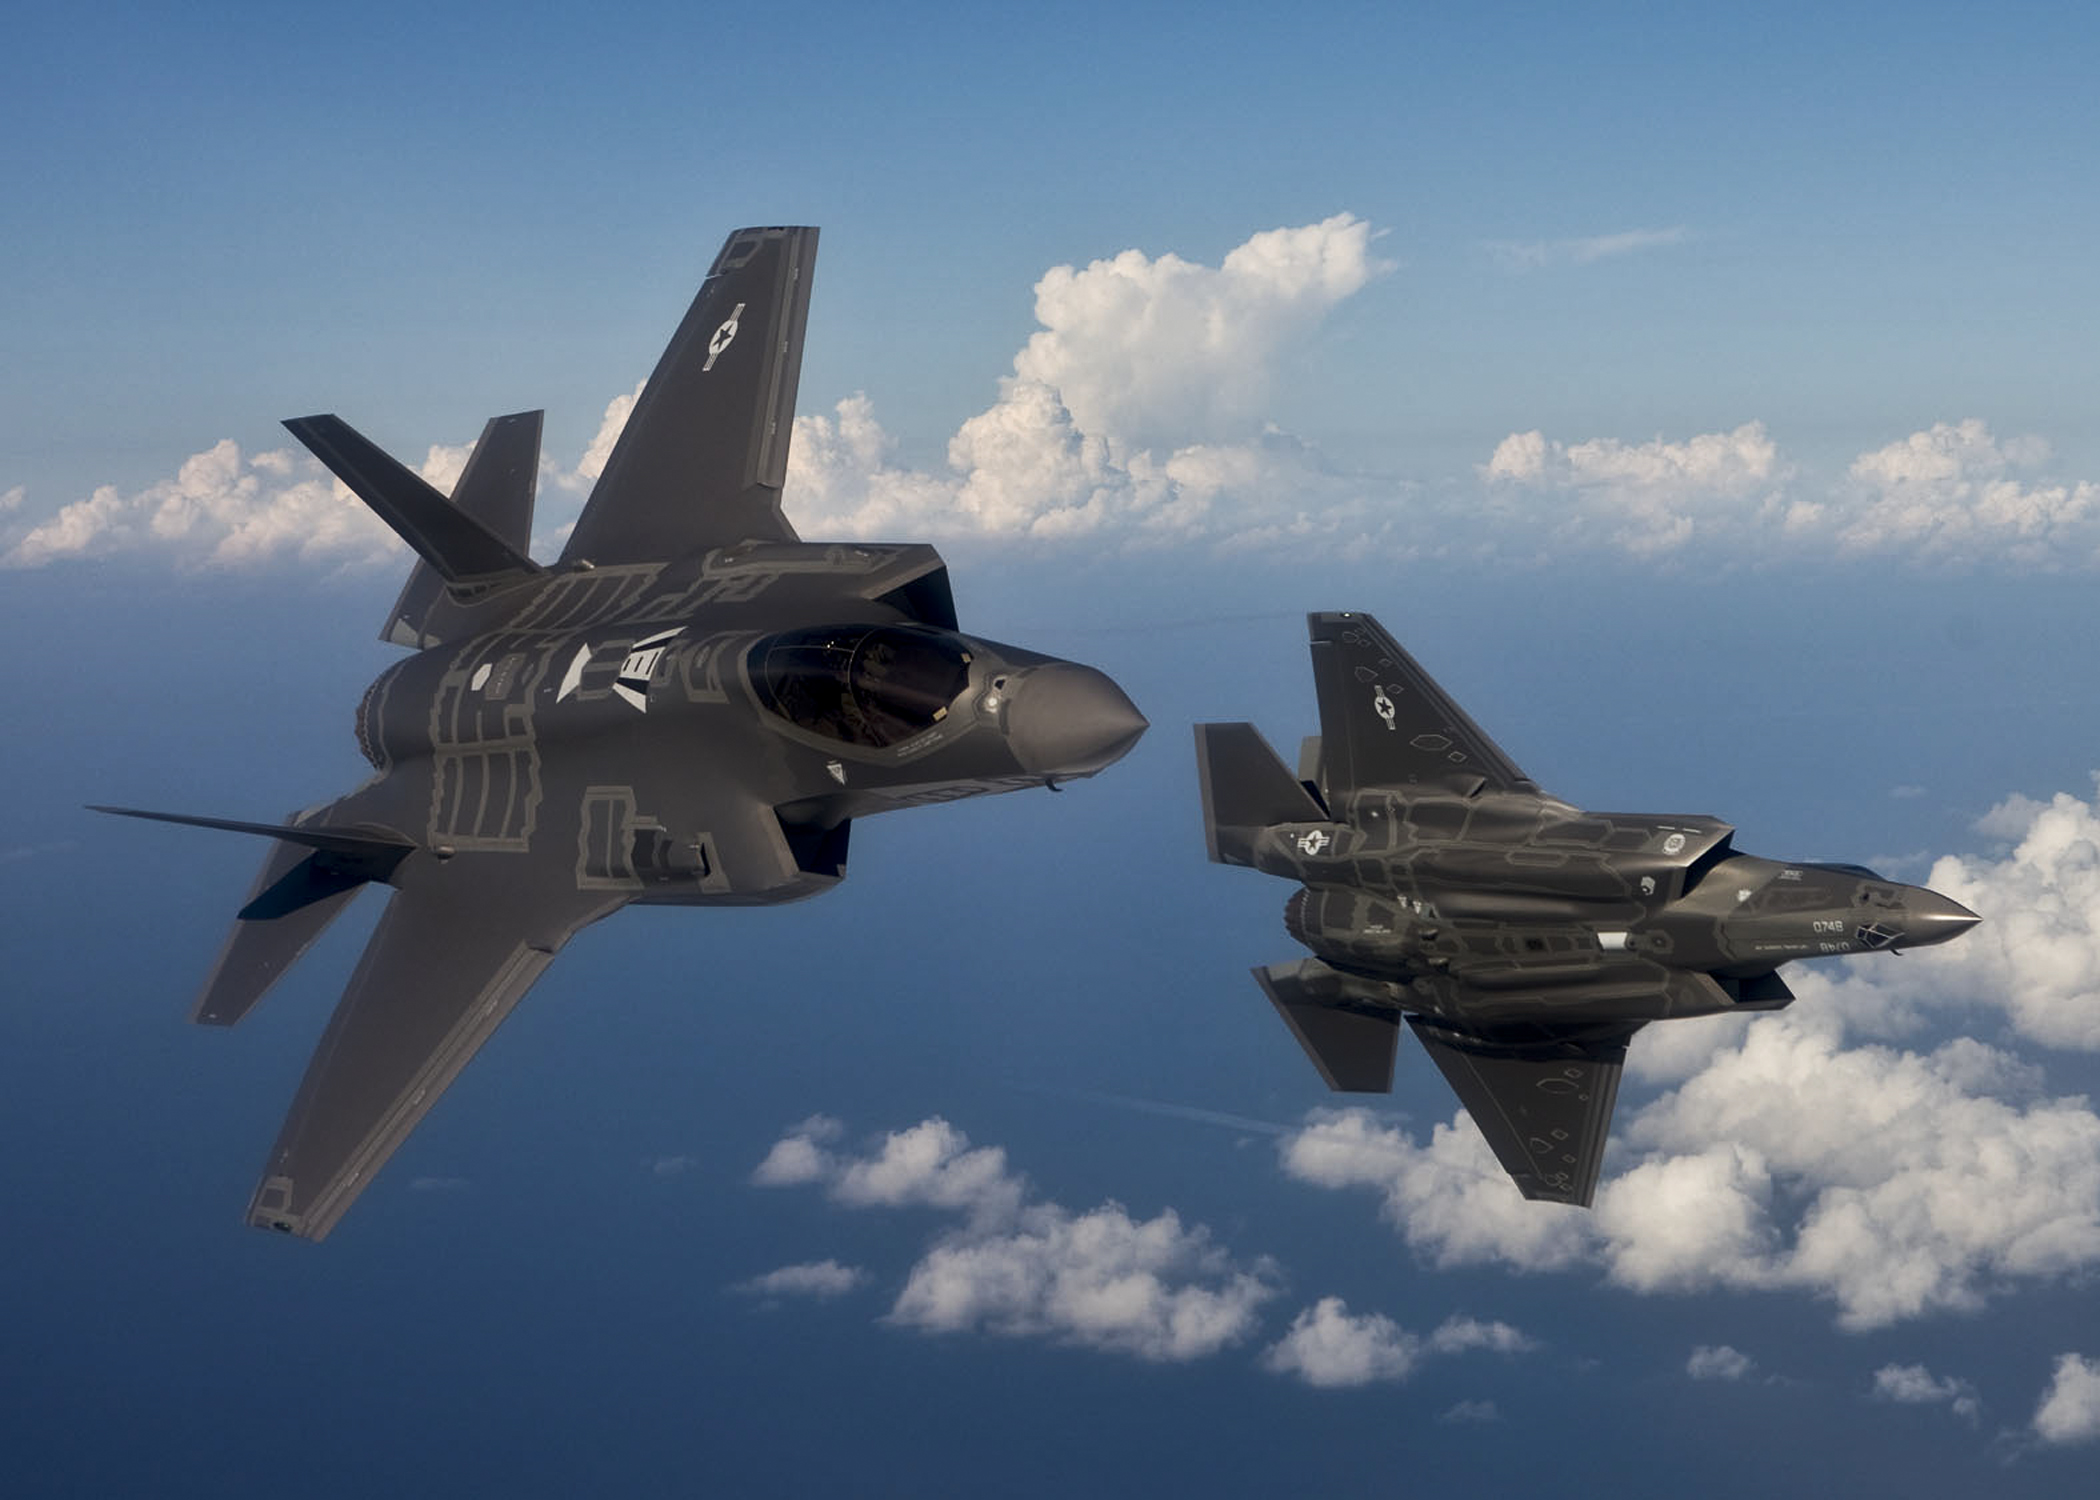 http://theaviationist.com/wp-content/uploads/2013/04/F-35.jpg